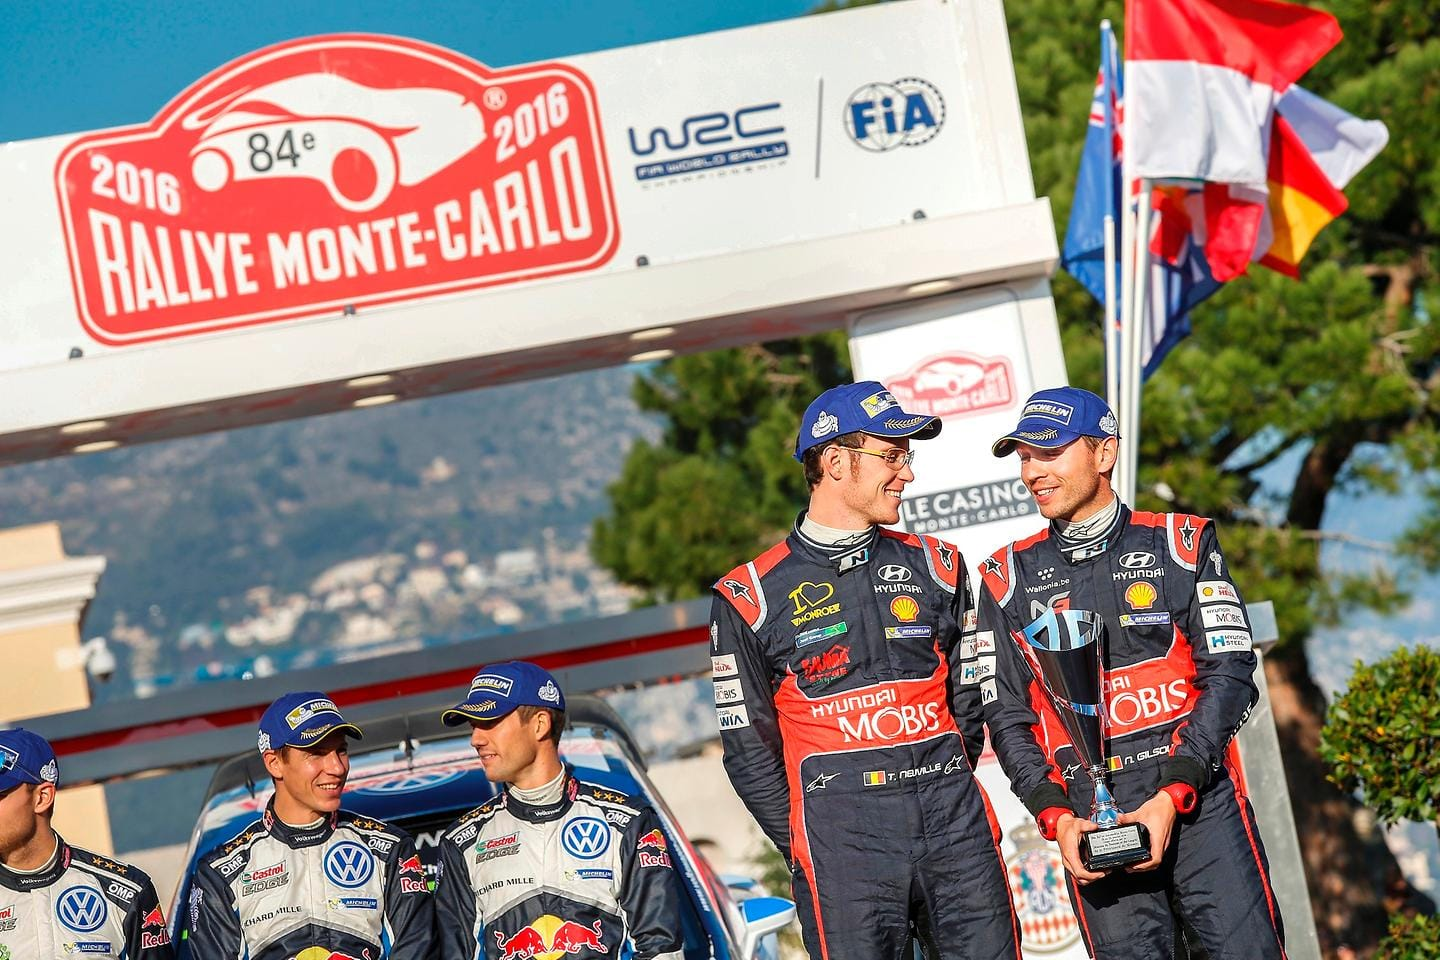 New Generation i20 WRC kicks off 2016 WRC season with a podium finish at Rallye Monte-Carlo